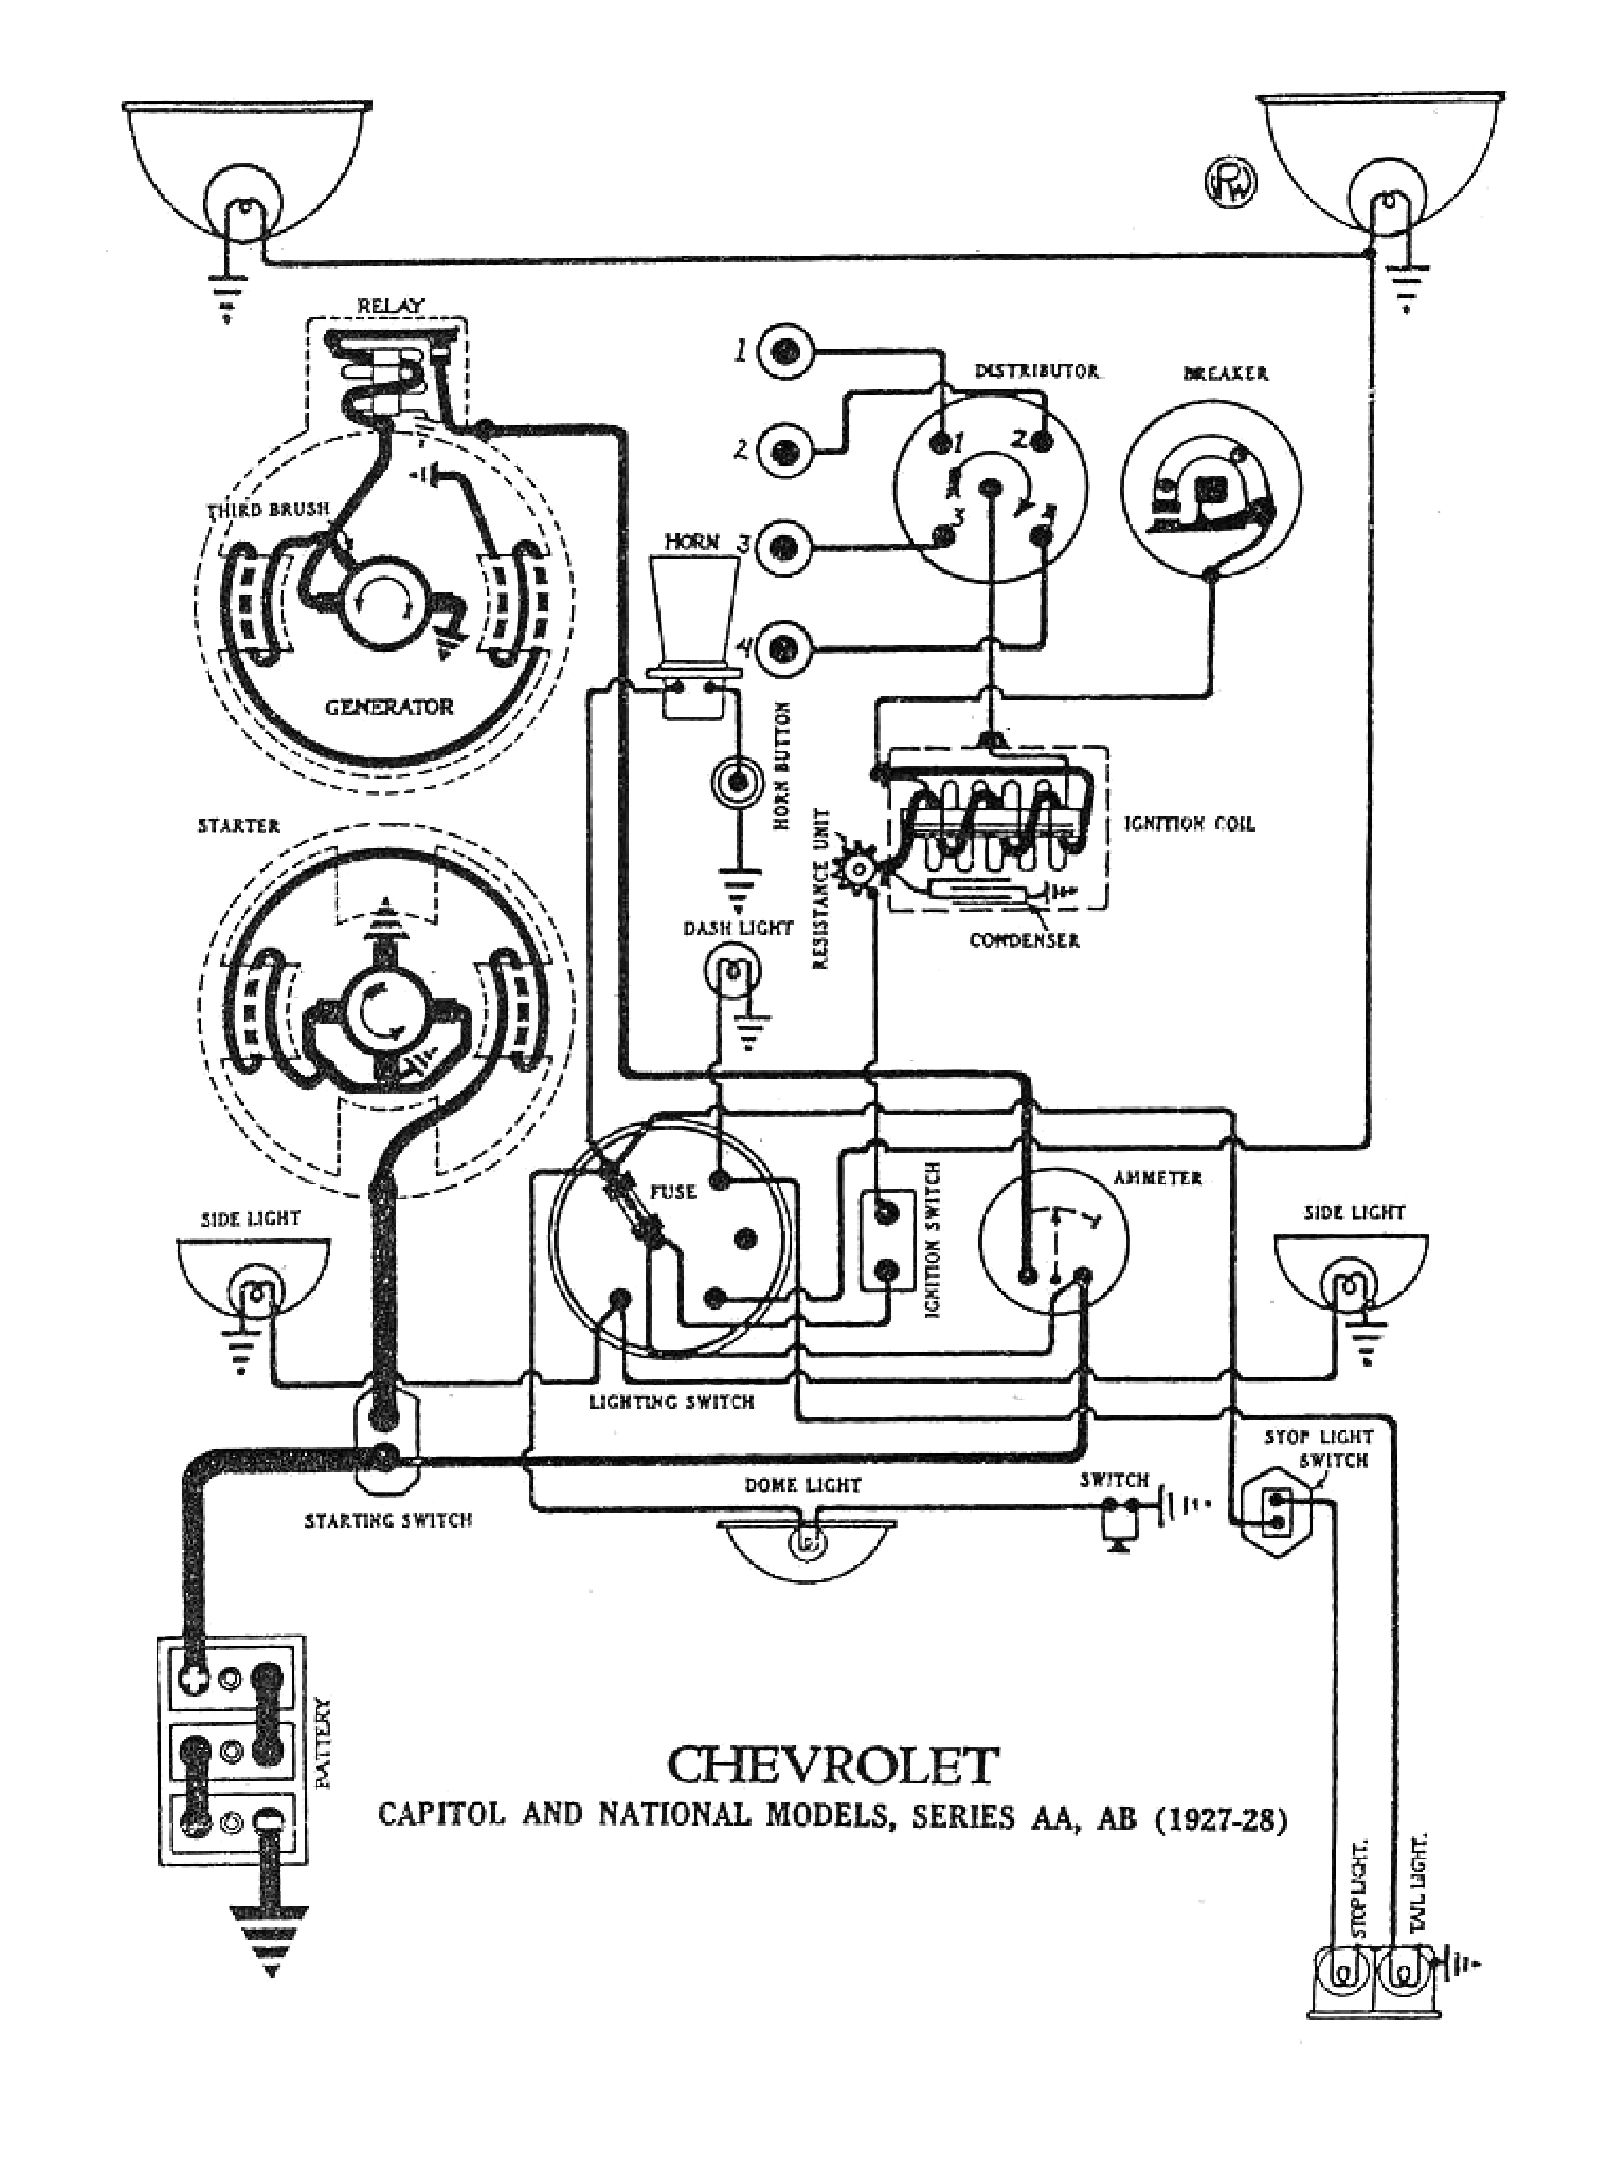 1946 Chevy Wiring Diagram Switch Renault Megane Gt220 Front Suspension Parts Diagrams 1 Excesstext Rh Oldcarmanualproject Com Chevrolet Truck